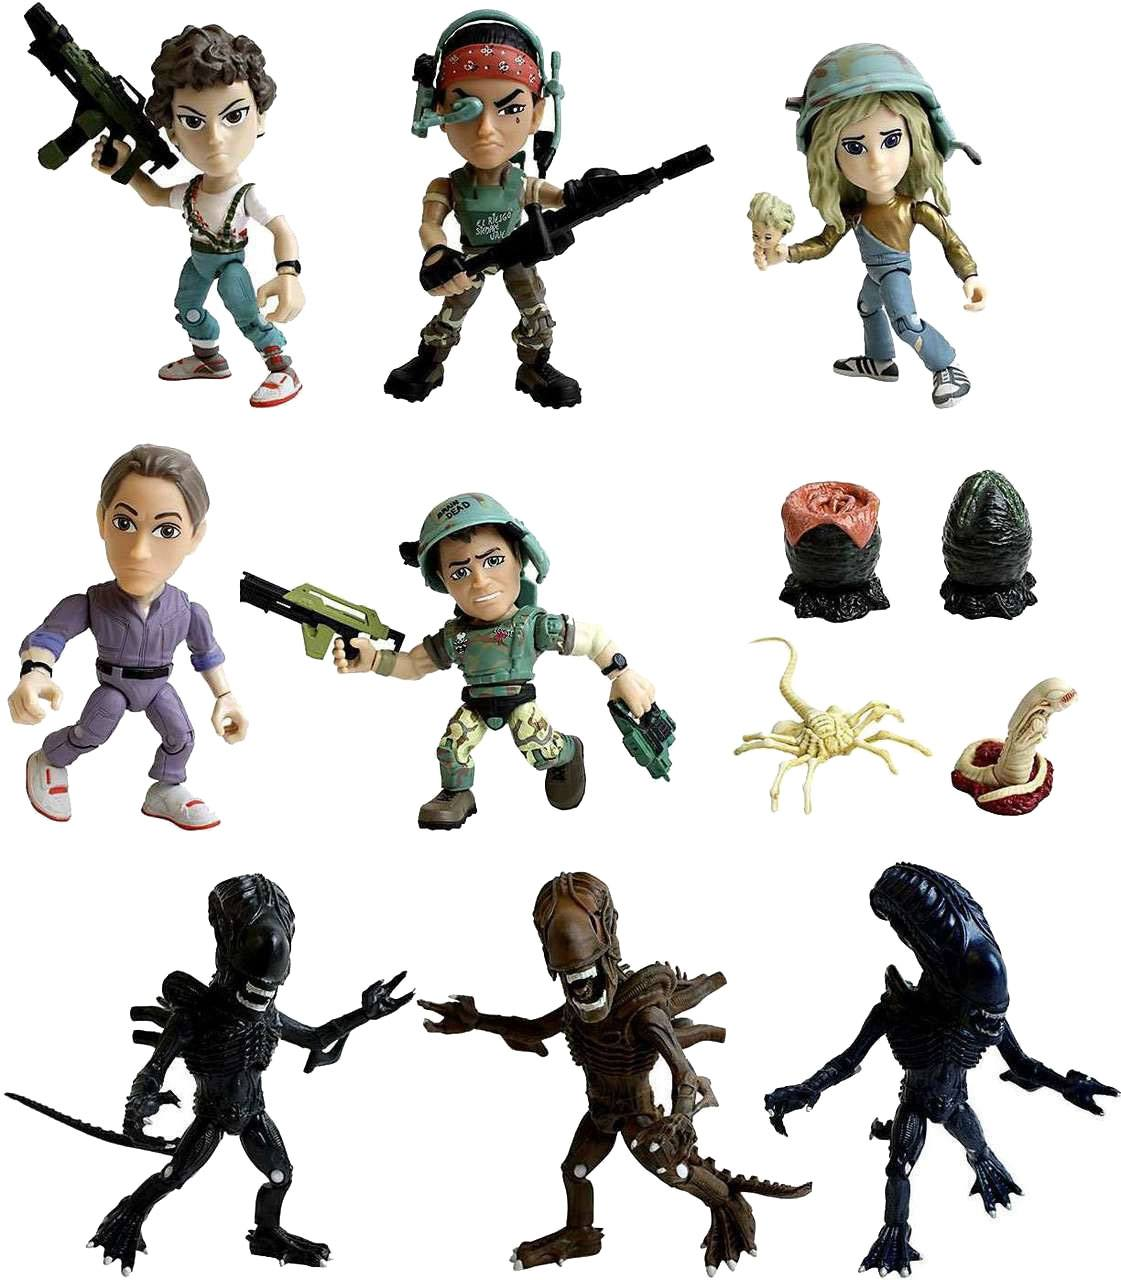 Aliens Action Vinyl Mini Figures 8 cm Wave 1 Display (12)